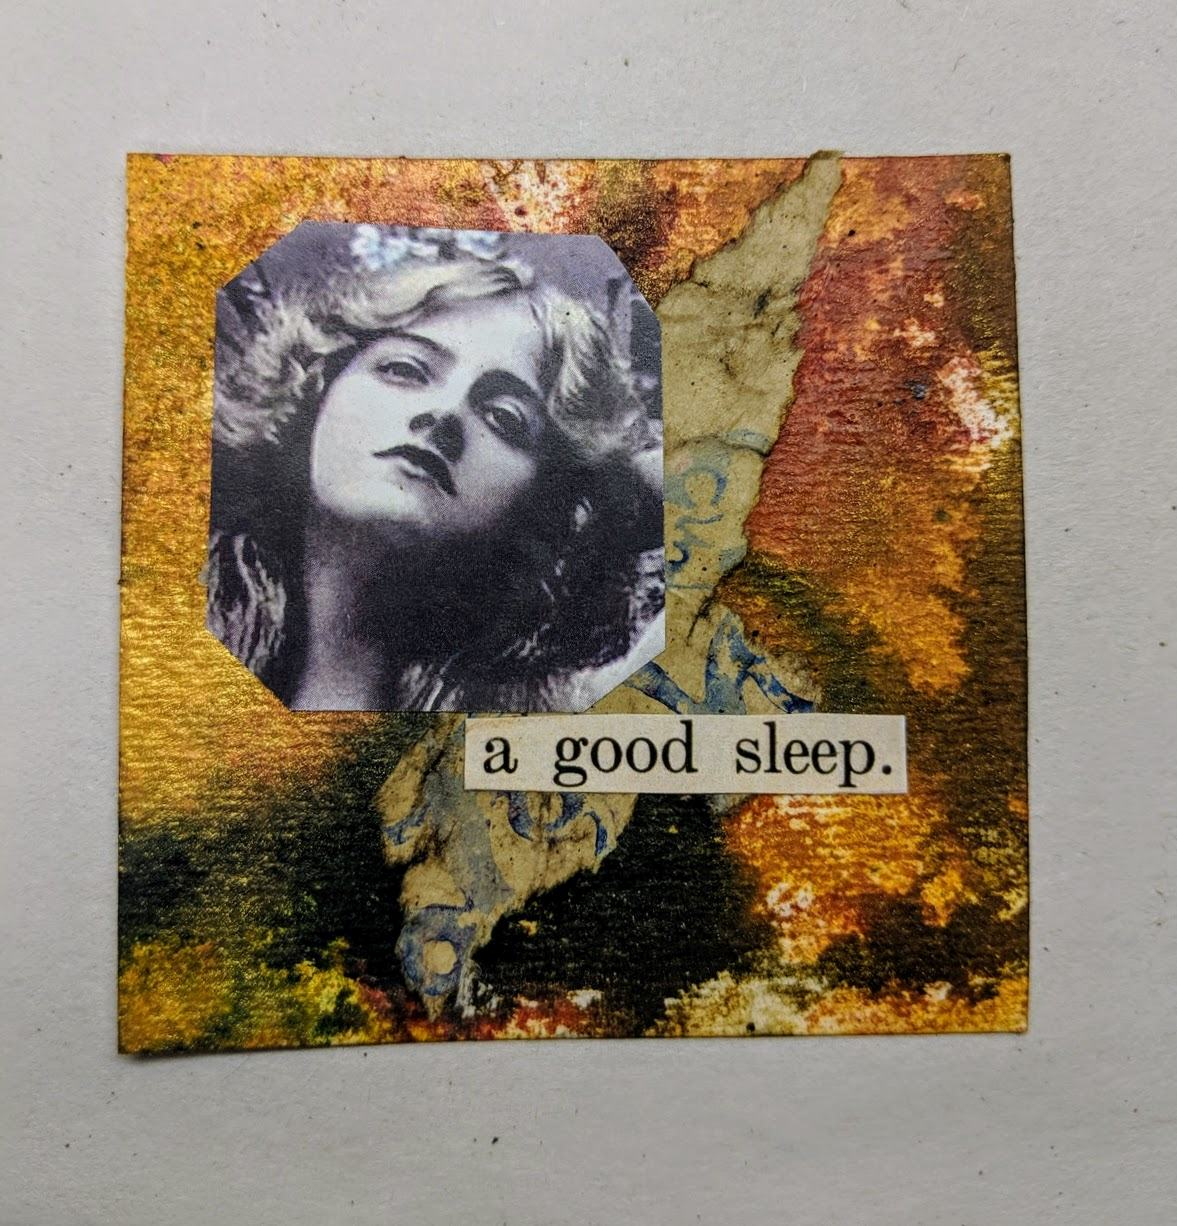 221: 3x3 card with dyes & collage